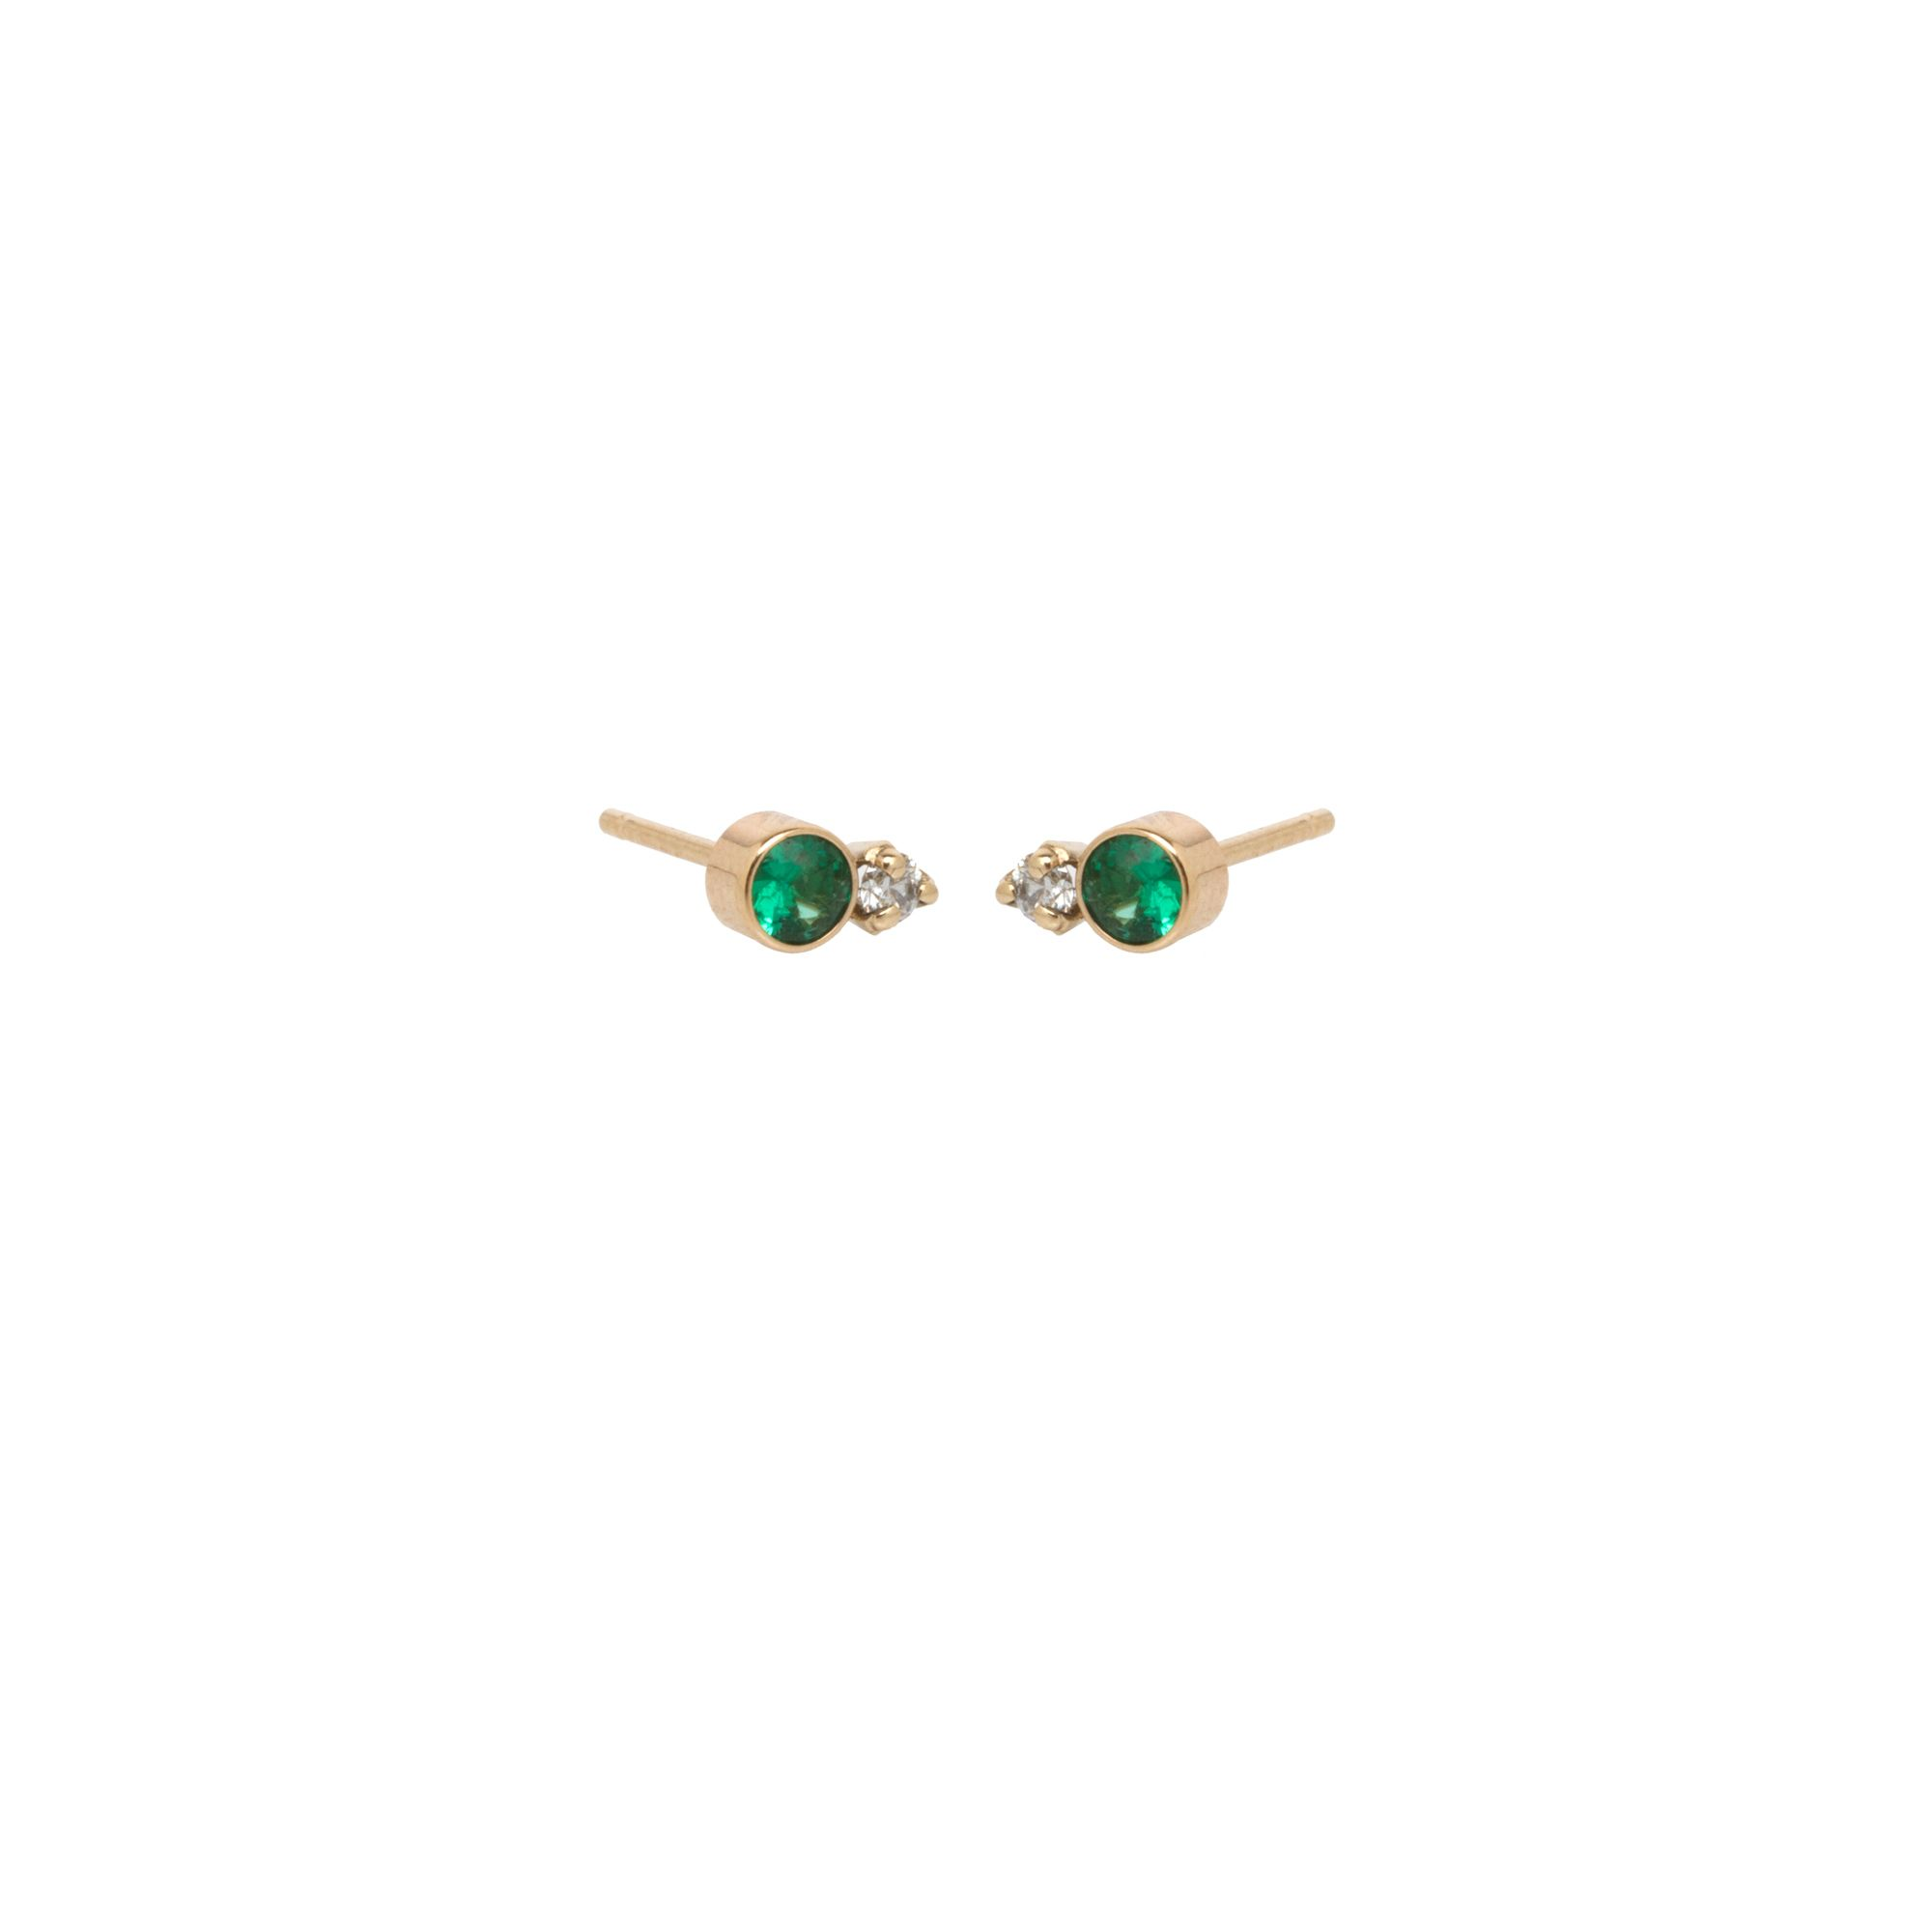 Zoe Chicco 14k Yellow Gold Bezel Set Emerald And Prong Set Diamond